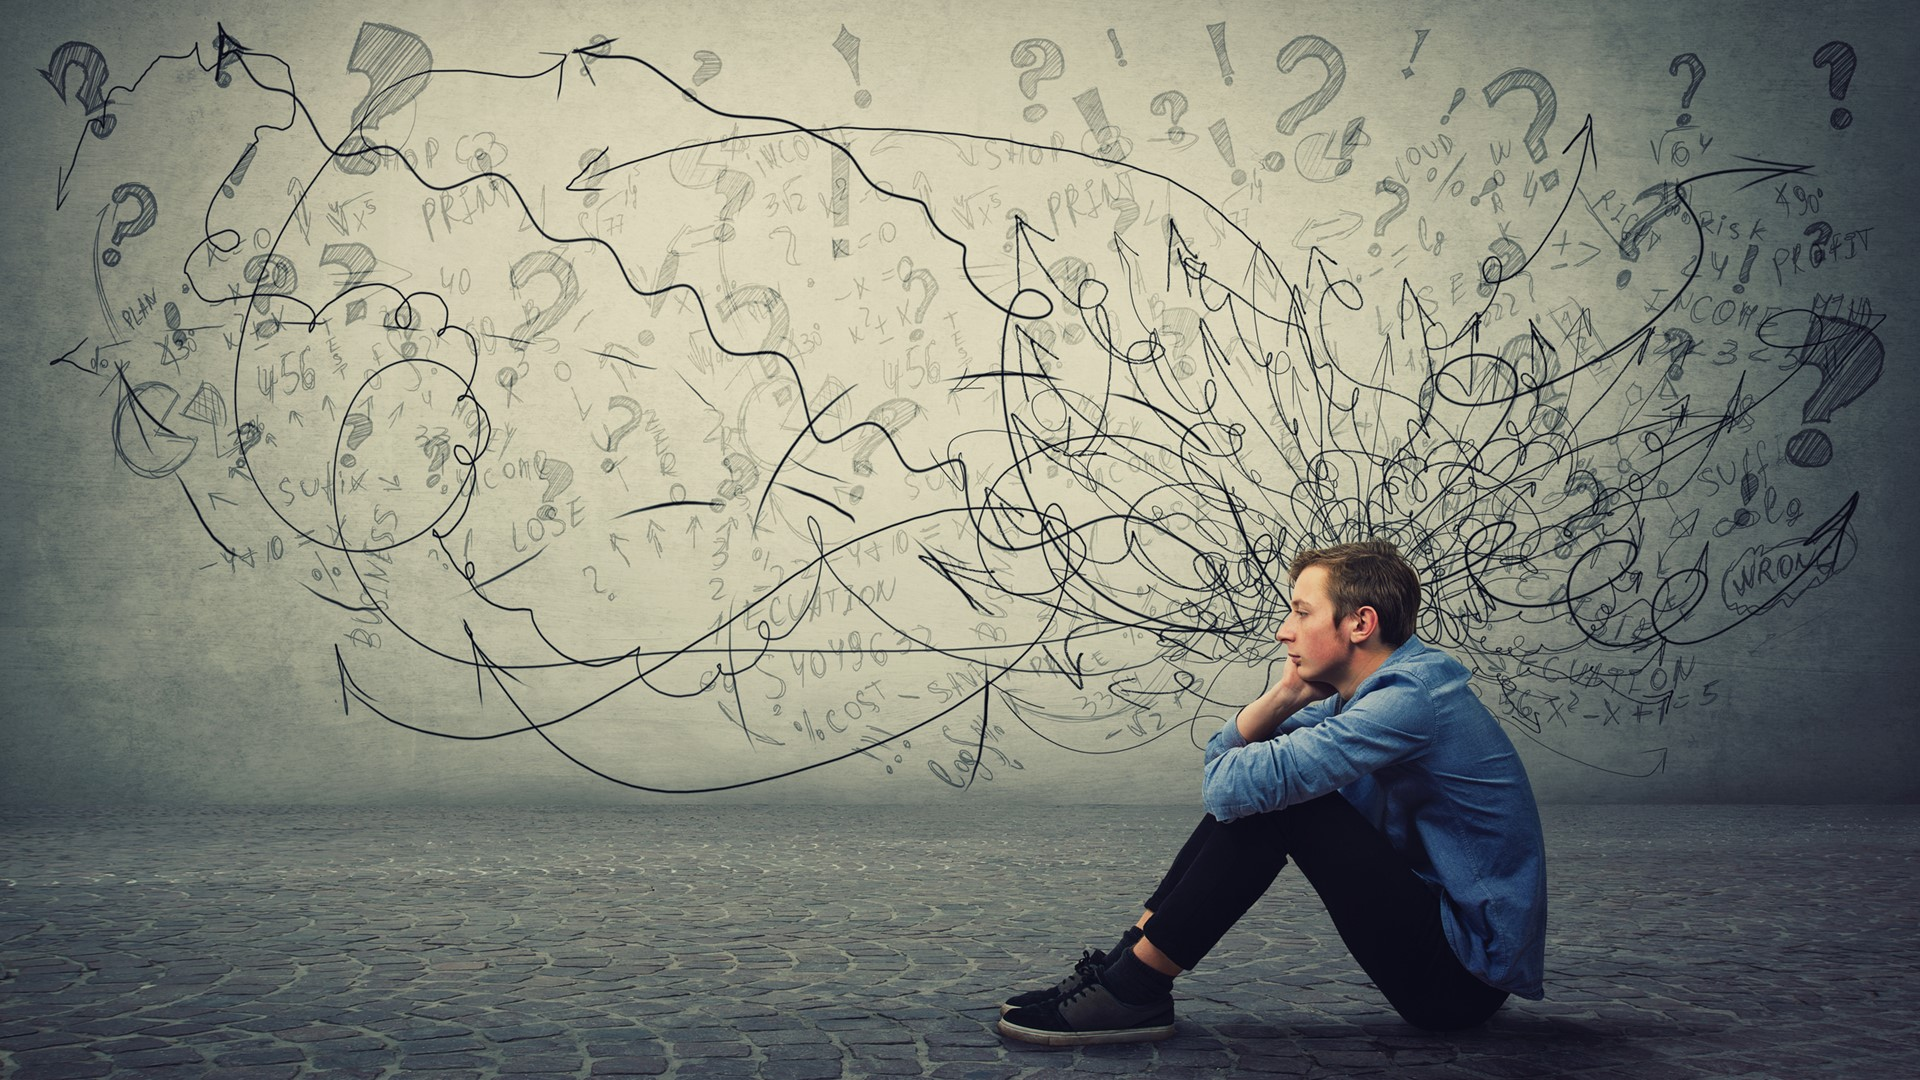 How To Put A Stop To Negative Thinking